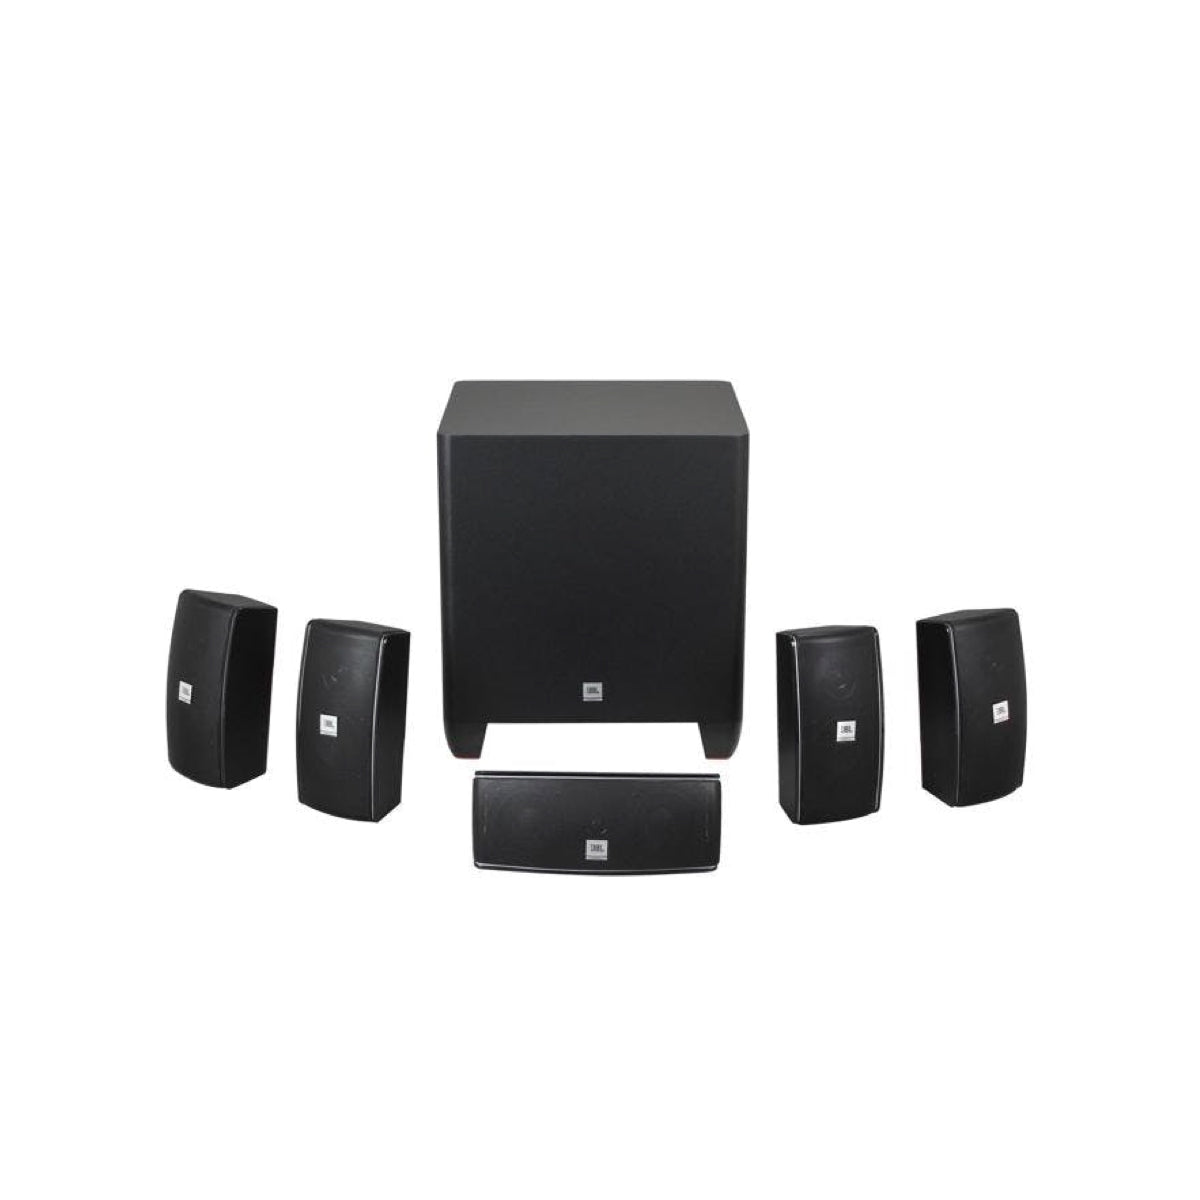 JBL Cinema 610 (5.1 Channel Satellite Speakers), JBL, 5.1 Speaker Package - AVStore.in